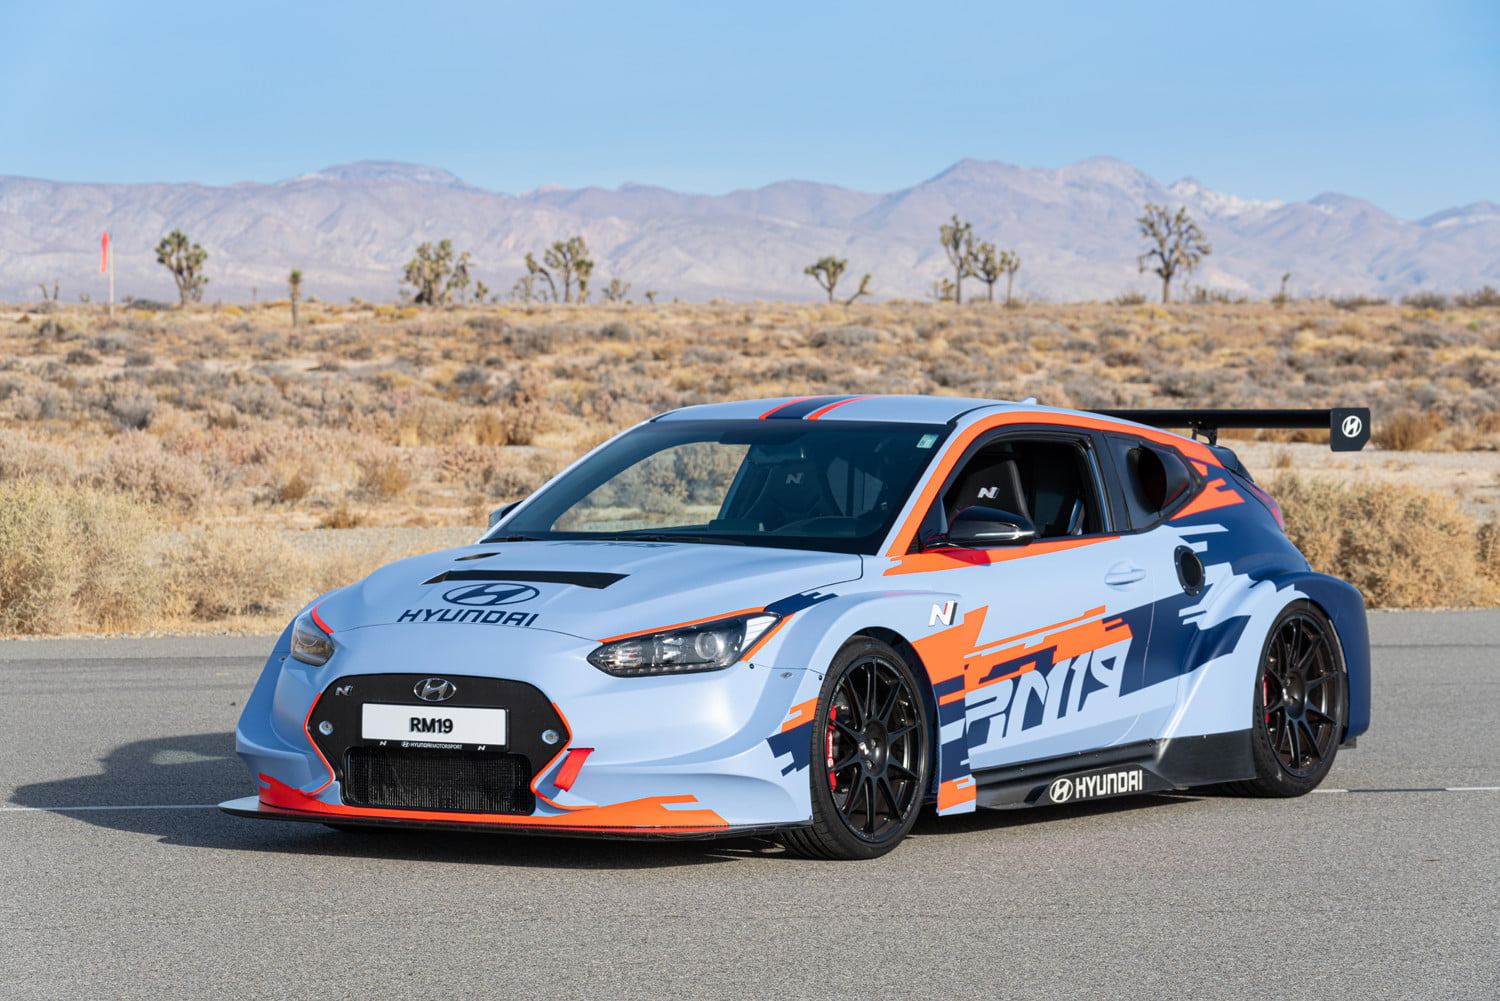 mid engined hyundai rm19 hot hatch unveiled at los angeles auto show 5